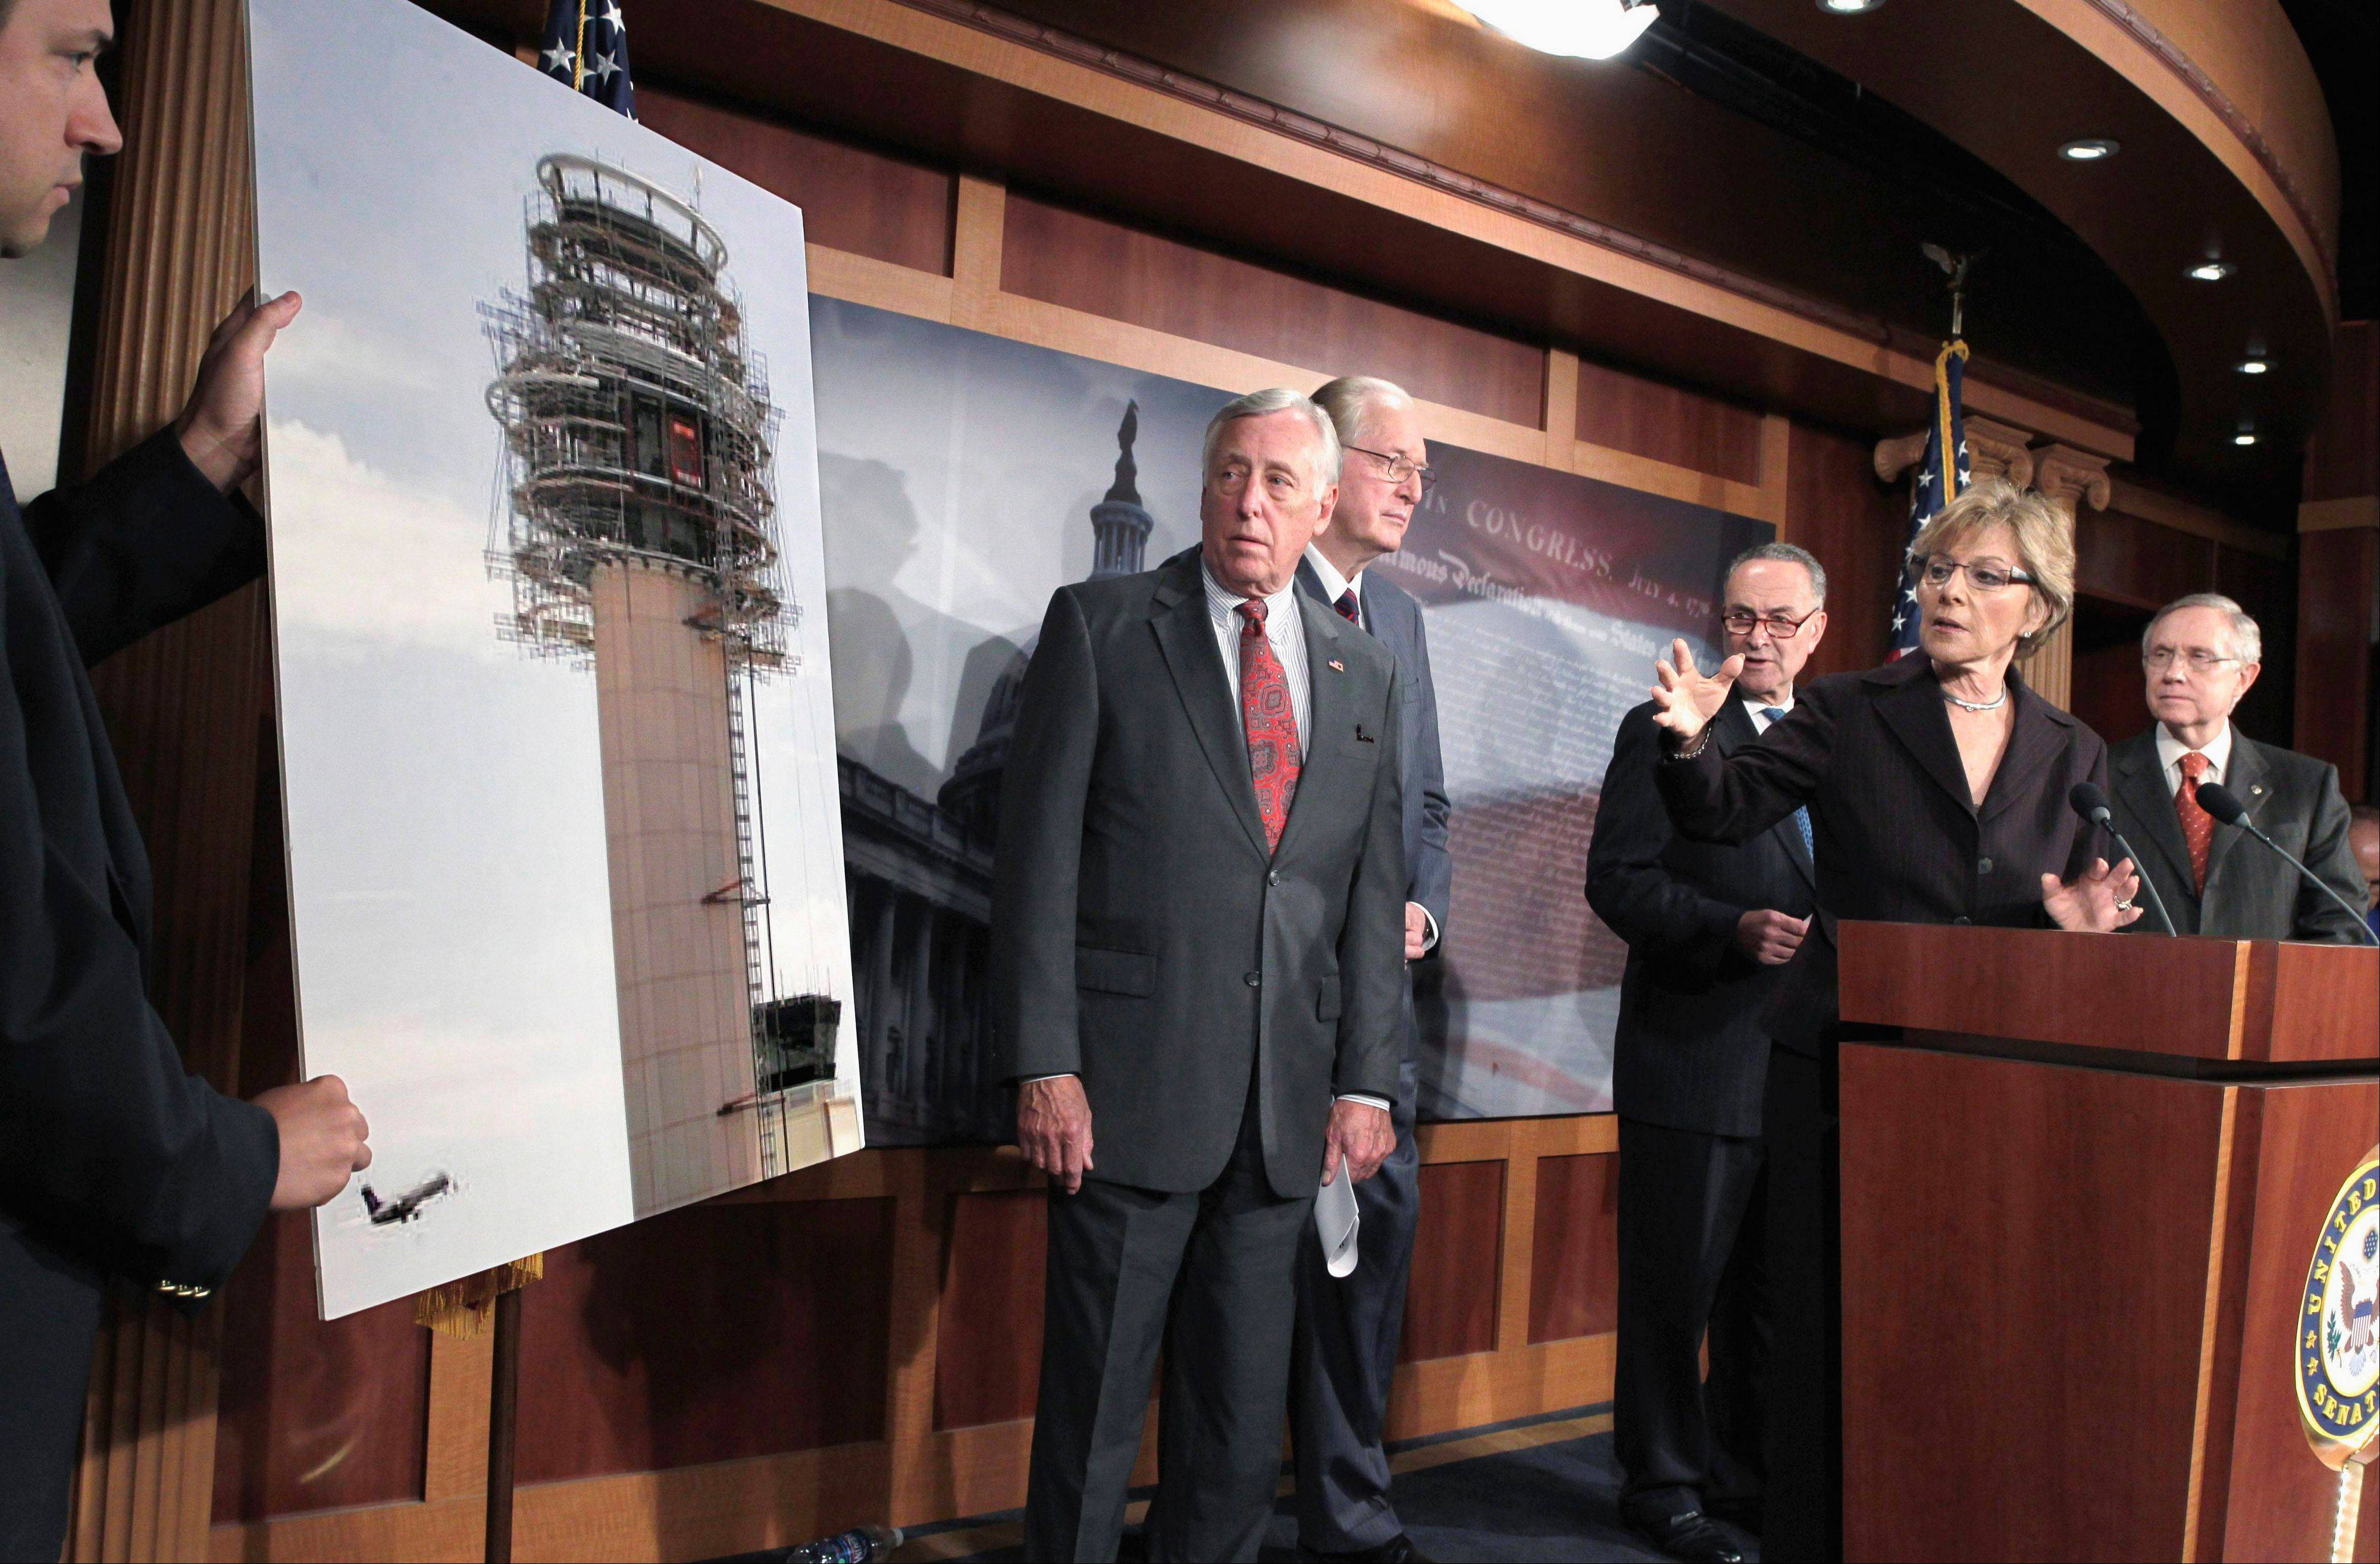 Democratic Sen. Barbara Boxer of California, second from right, points to a photo of a control tower being built in Palm Springs, Calif., that suffered some damage while under construction. ngton. The Senate approved legislation Friday ending a two-week partial shutdown of the Federal Aviation Administration, clearing the way for thousands of employees to return to work and hundreds of airport construction projects to resume.